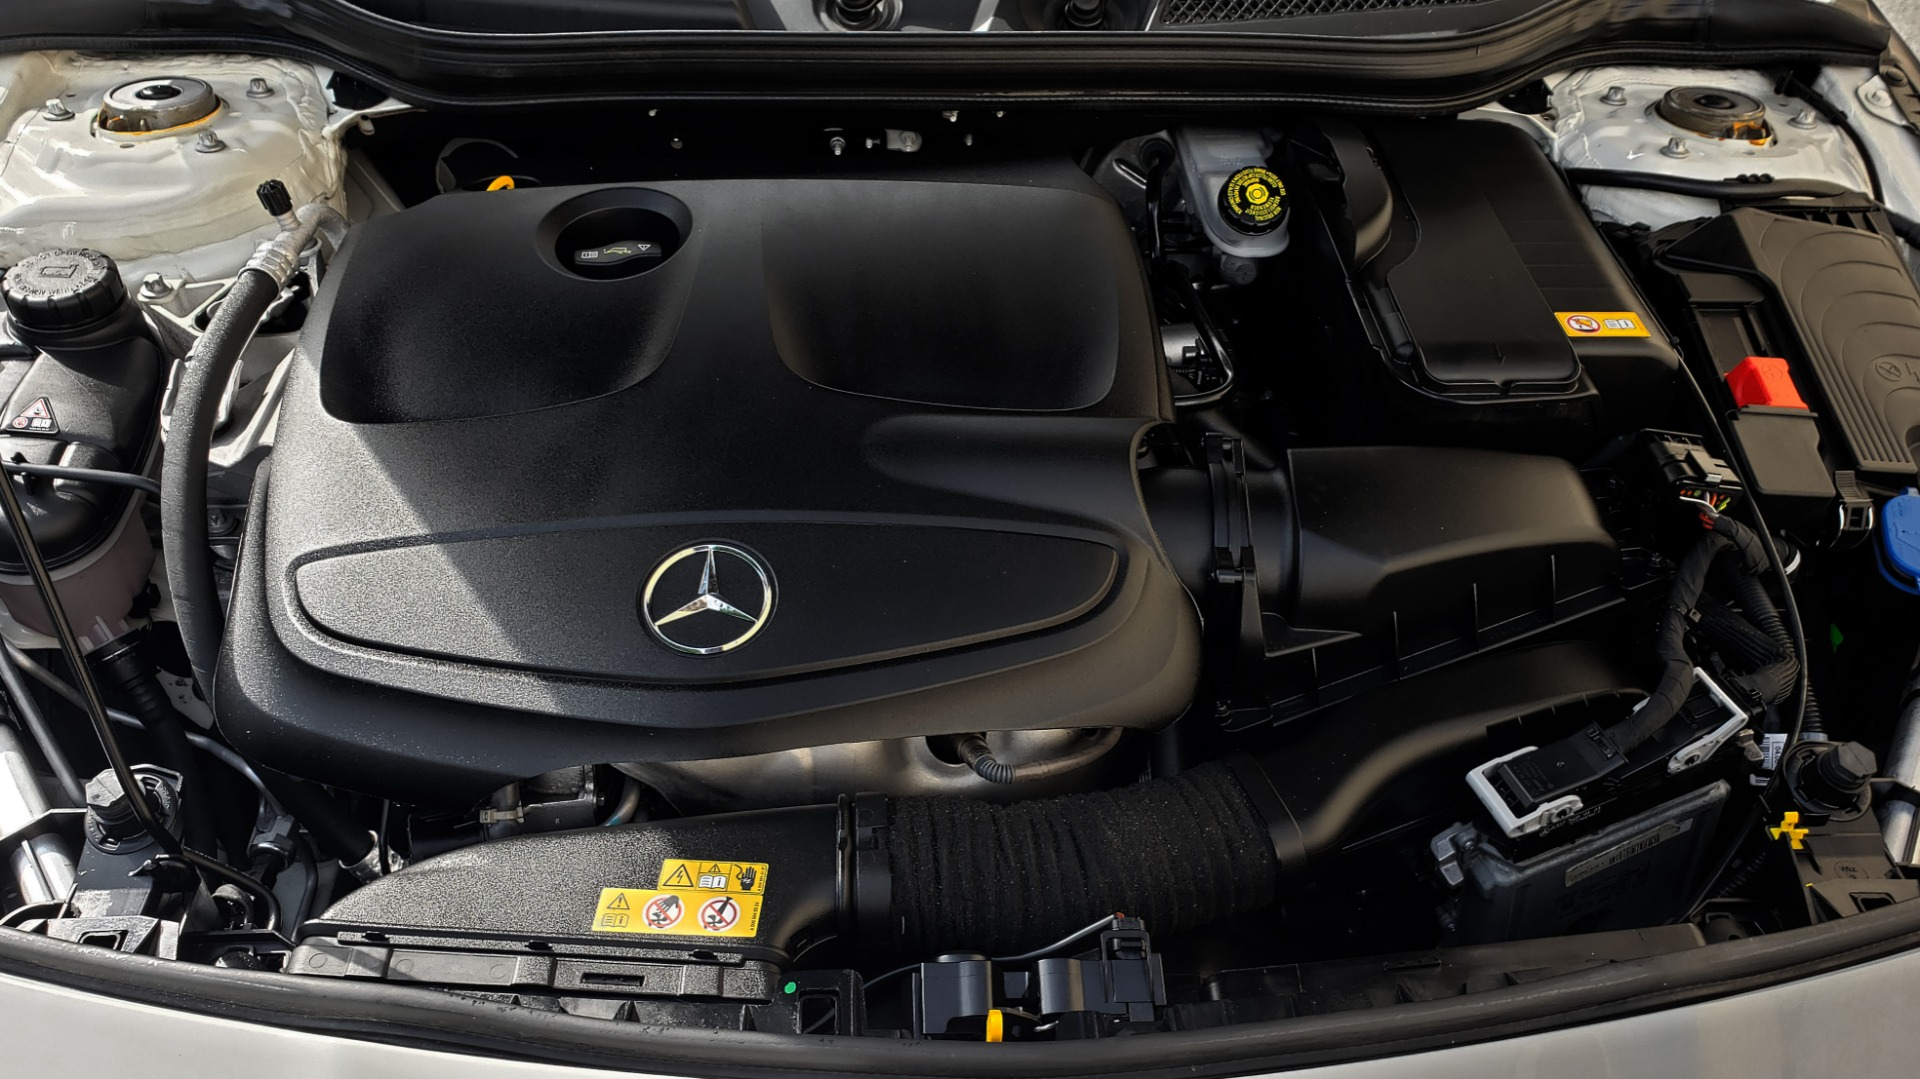 Used 2015 Mercedes-Benz CLA-Class CLA250 / FWD / SUNROOF / SPORT SUSP / CAMERA for sale Sold at Formula One Imports in Charlotte NC 28227 11